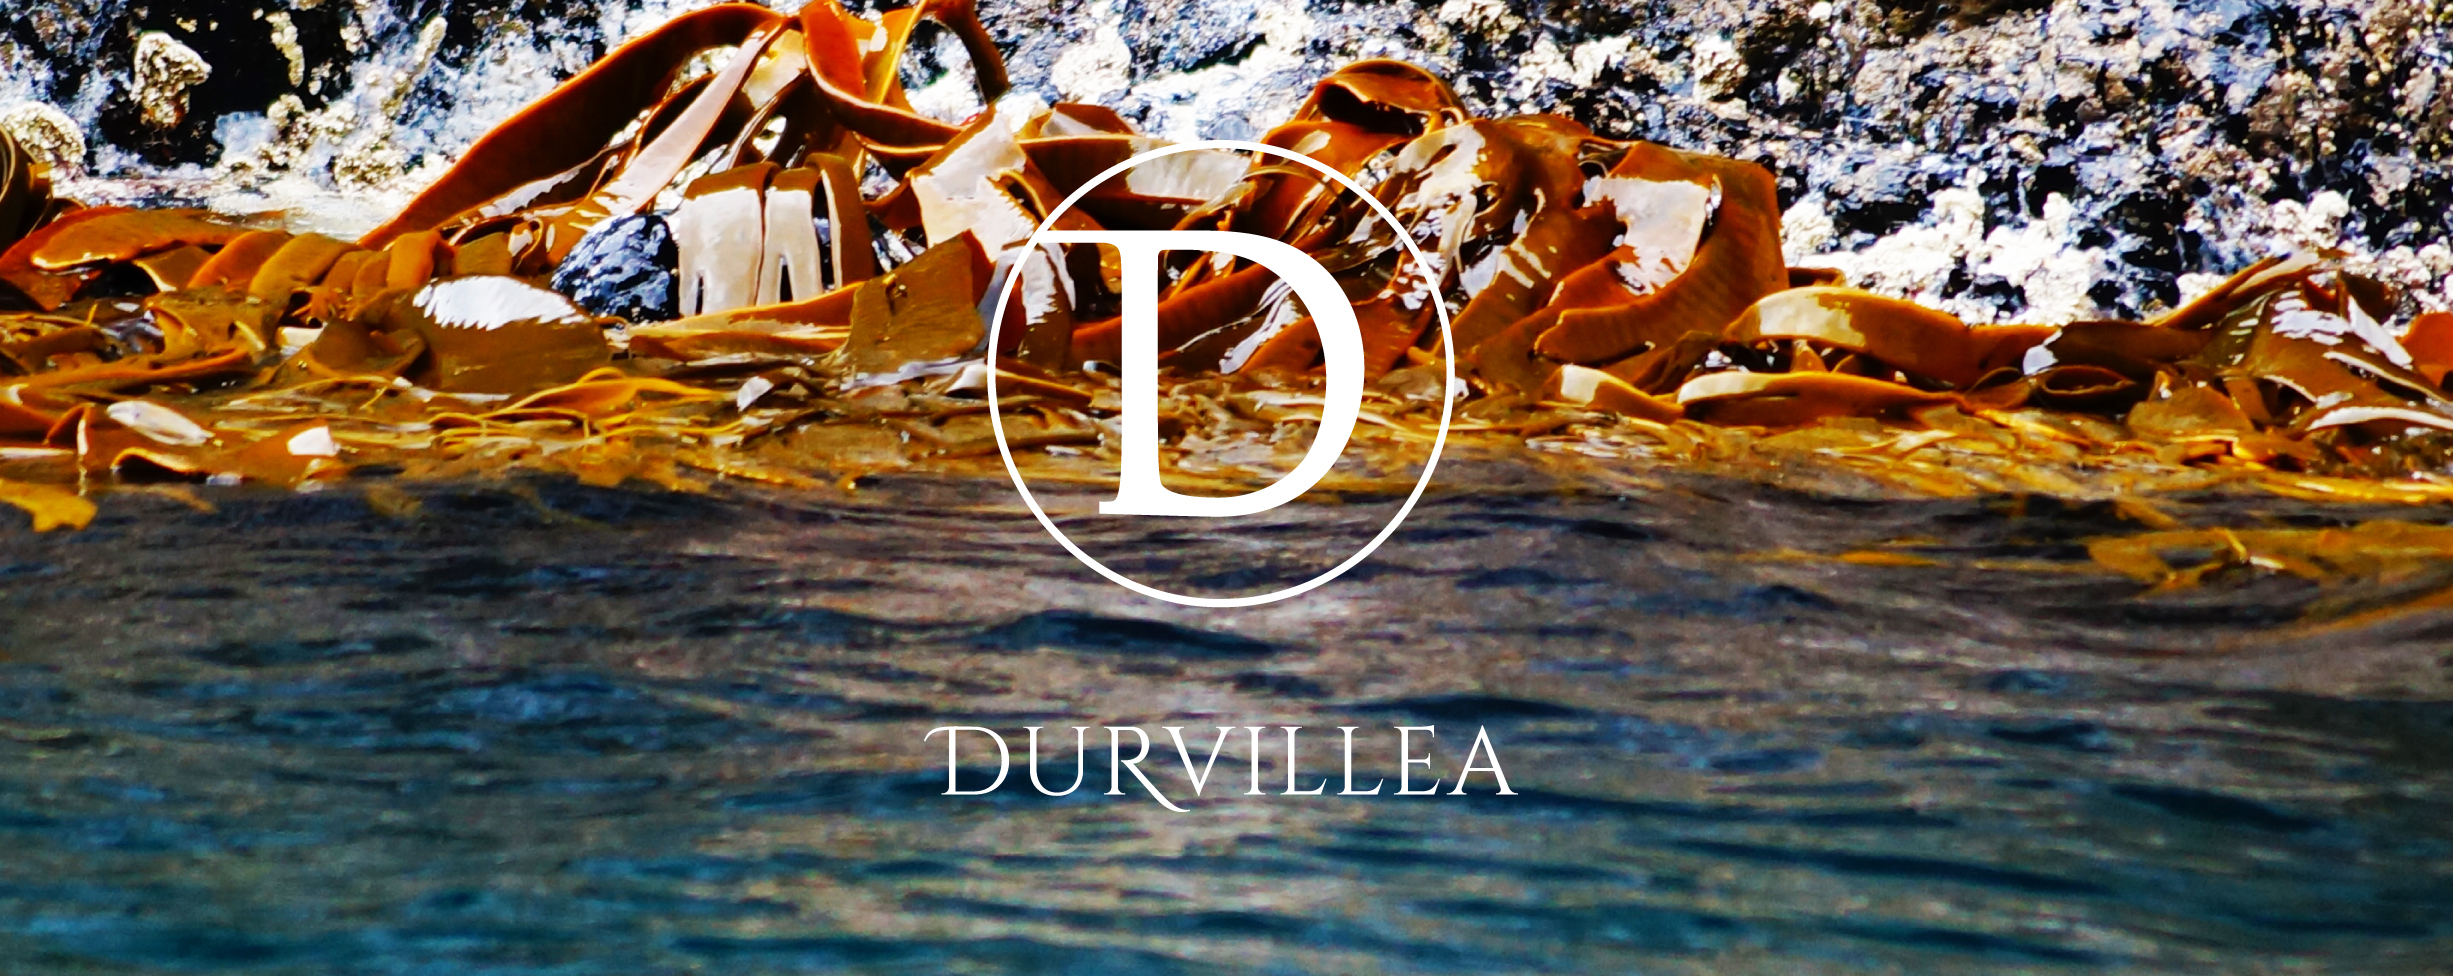 DURVILLEA WINES    MARLBOROUGH, NZ   All along our shores, holding fast to the rocks at low tide is the seaweed, 'Durvillea'. Named after the Captain of L'Astrolabe Dumont d'Urville, this seaweed defines the ruggedness of our rocky coast.  The Durvillea grapes are grown at carefully selected sites across the Marlborough region and harvested at precisely the right moment to preserve the purity and intensity of flavour in the wine. Durvillea is the second label to Astrolabe Wines and is made in a classic Marlborough style with parcels of fruit from the Astrolabe vineyards.